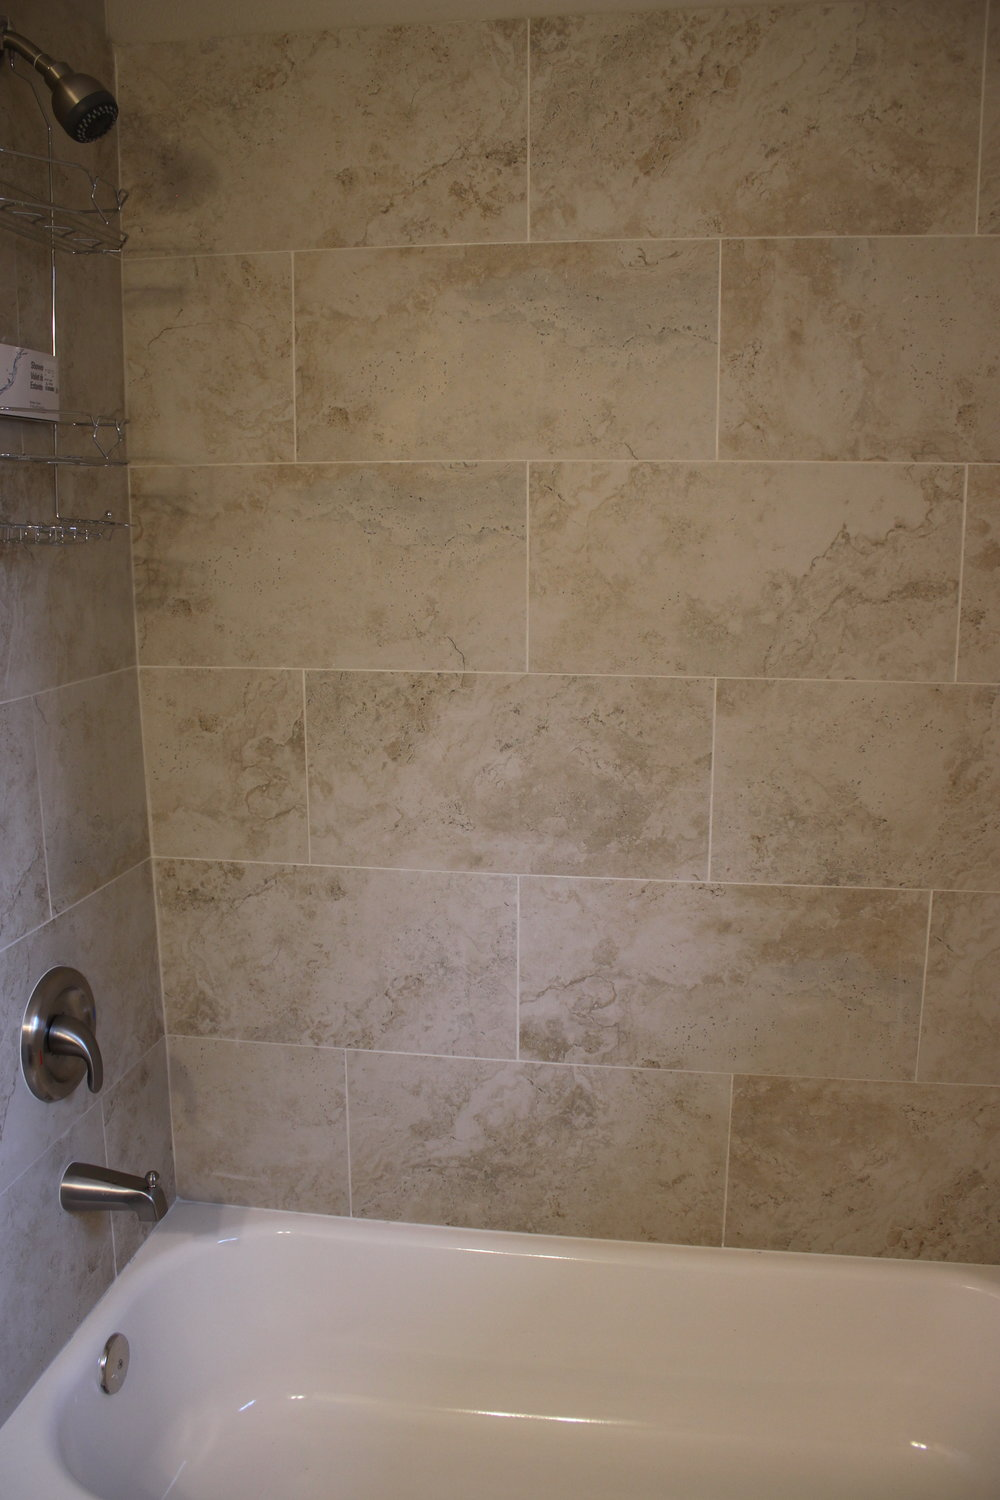 After - laying tile in a subway pattern gave the shower wall some interest and sophistication